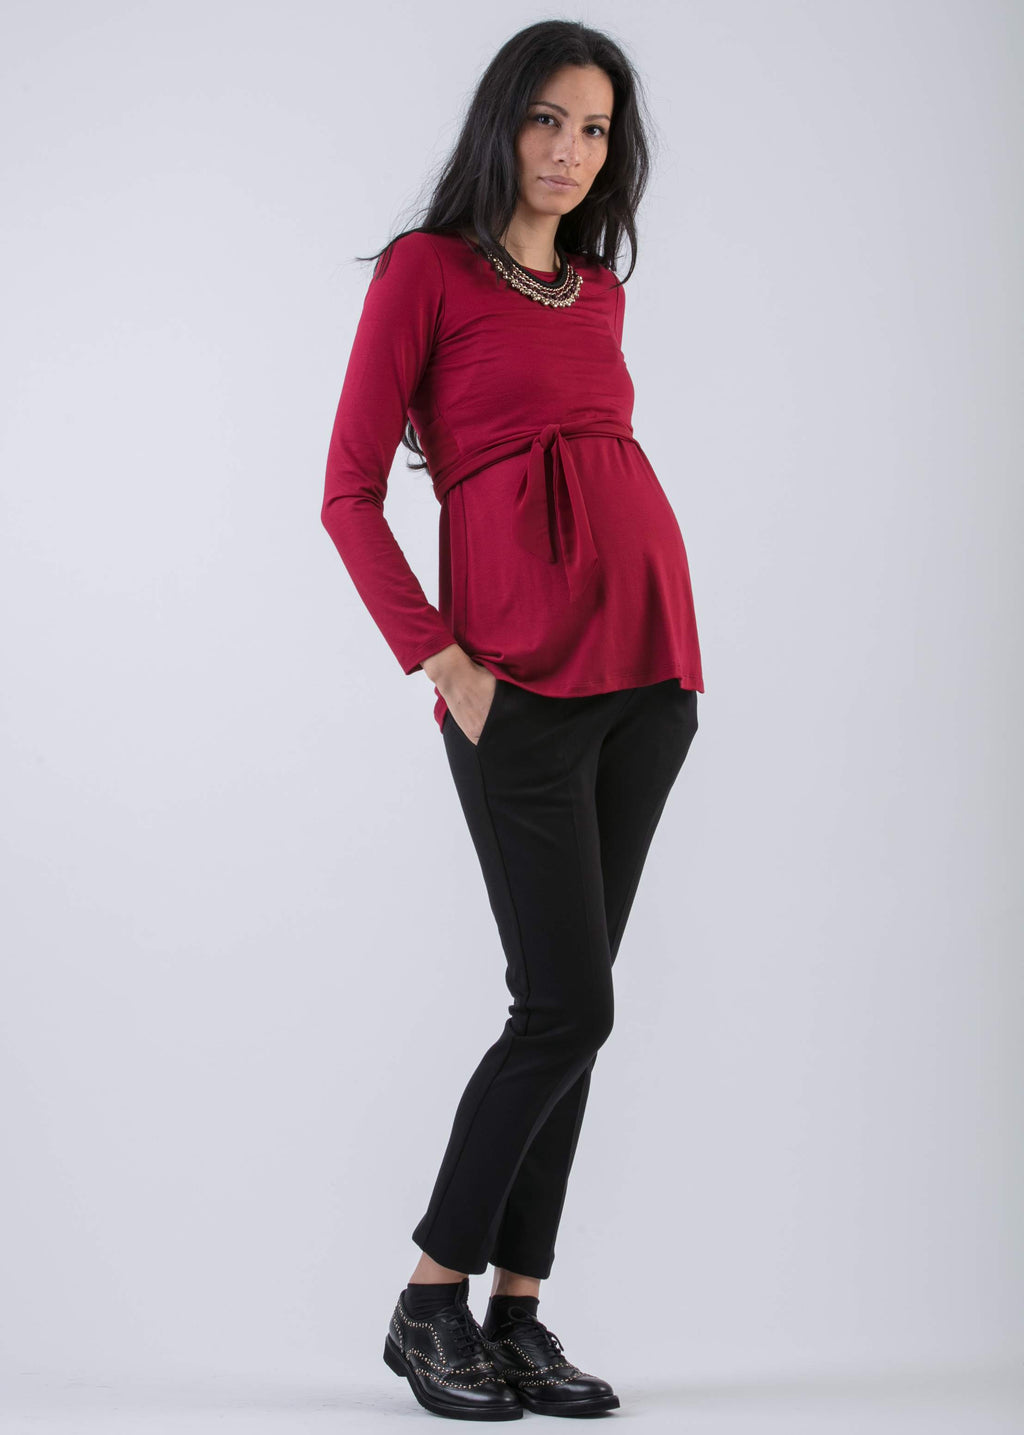 Breastfeeding and Maternity top long sleeve with chiffon tie, Red